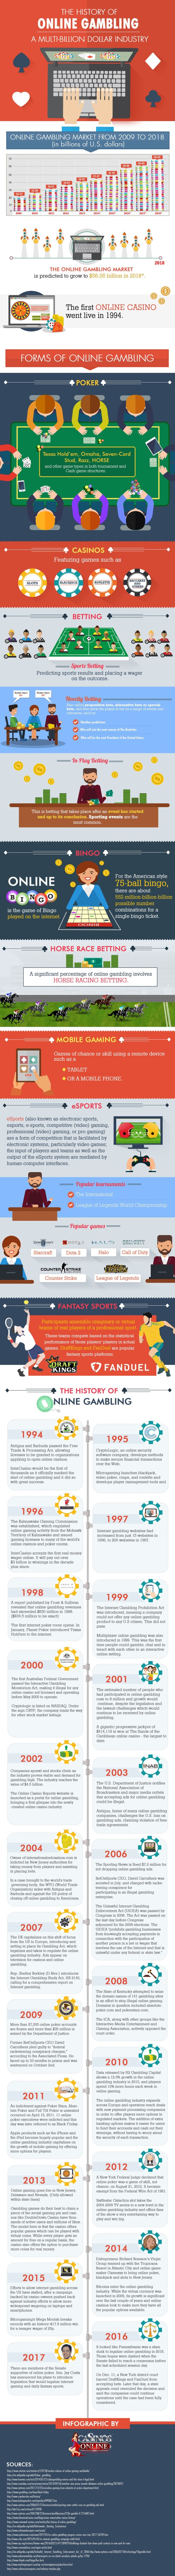 Infographic: The History of Online Gambling